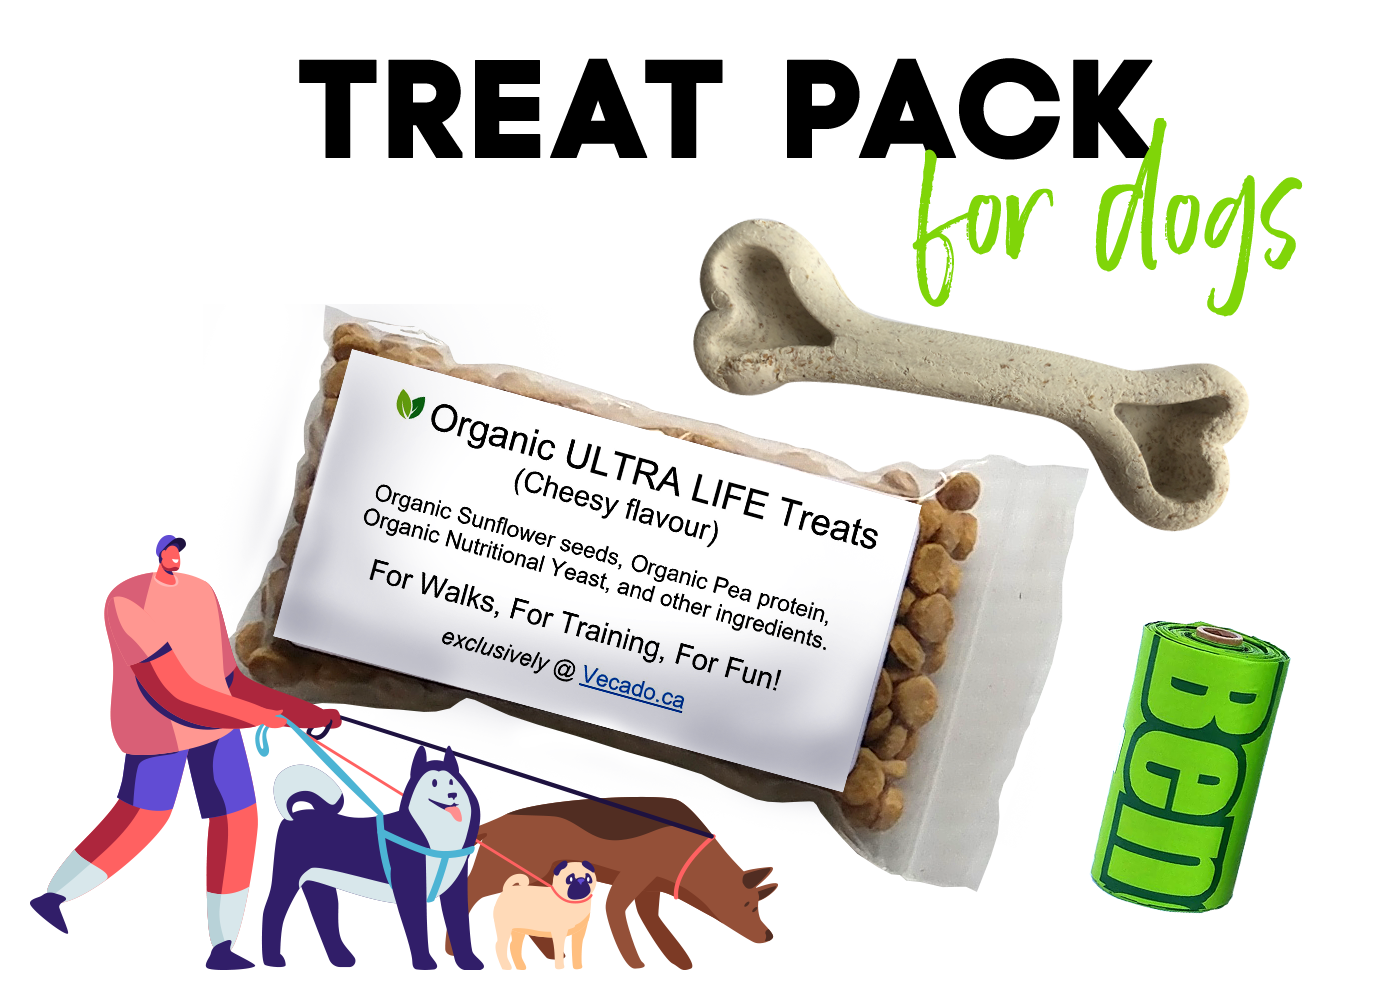 Pack of Treats for Dogs